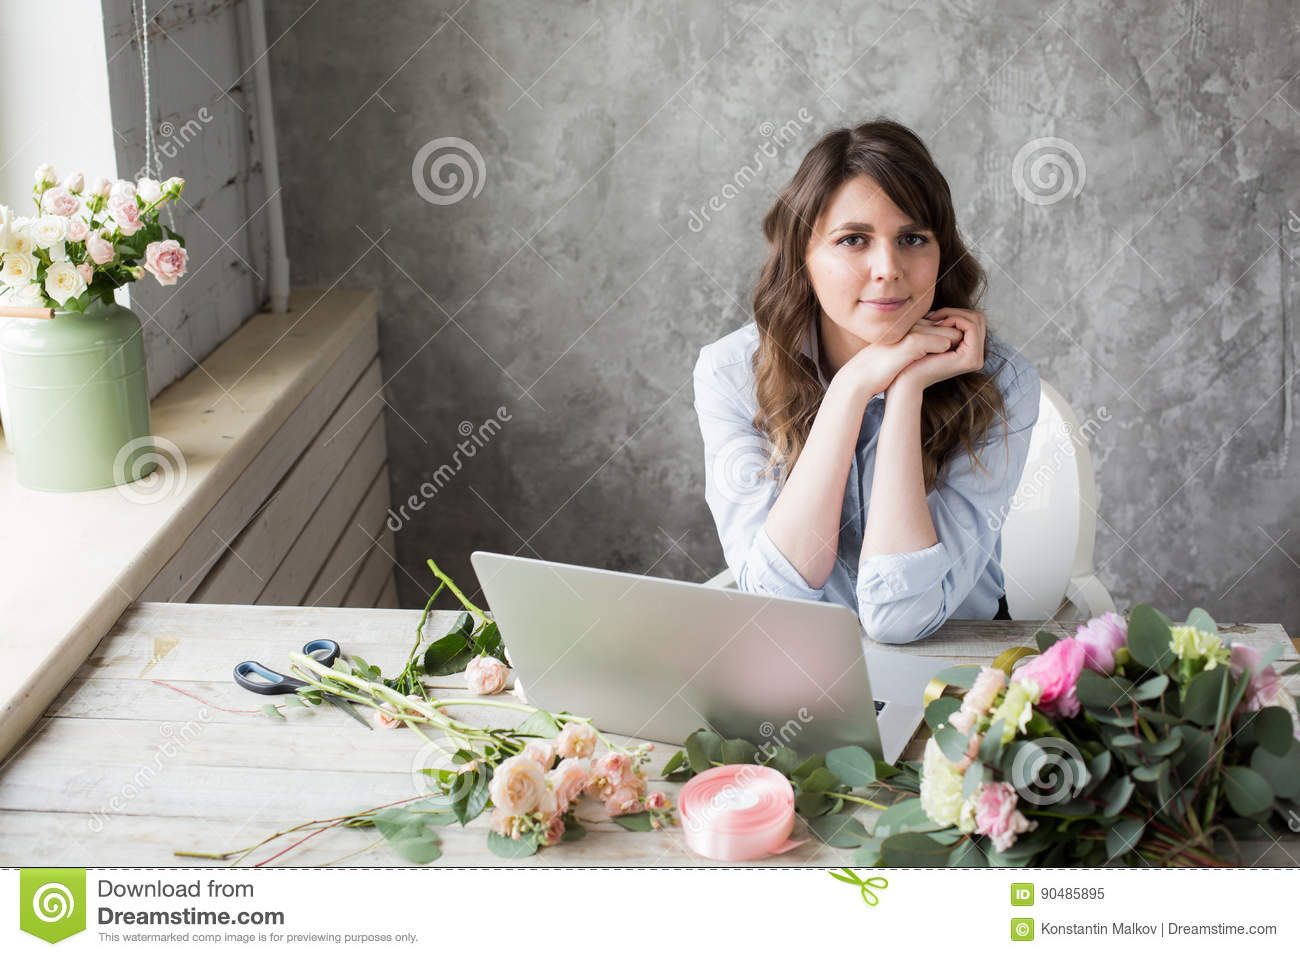 Smiling Mature Woman Florist Small Business Flower Shop Owner. She is using her telephone and laptop to take orders for